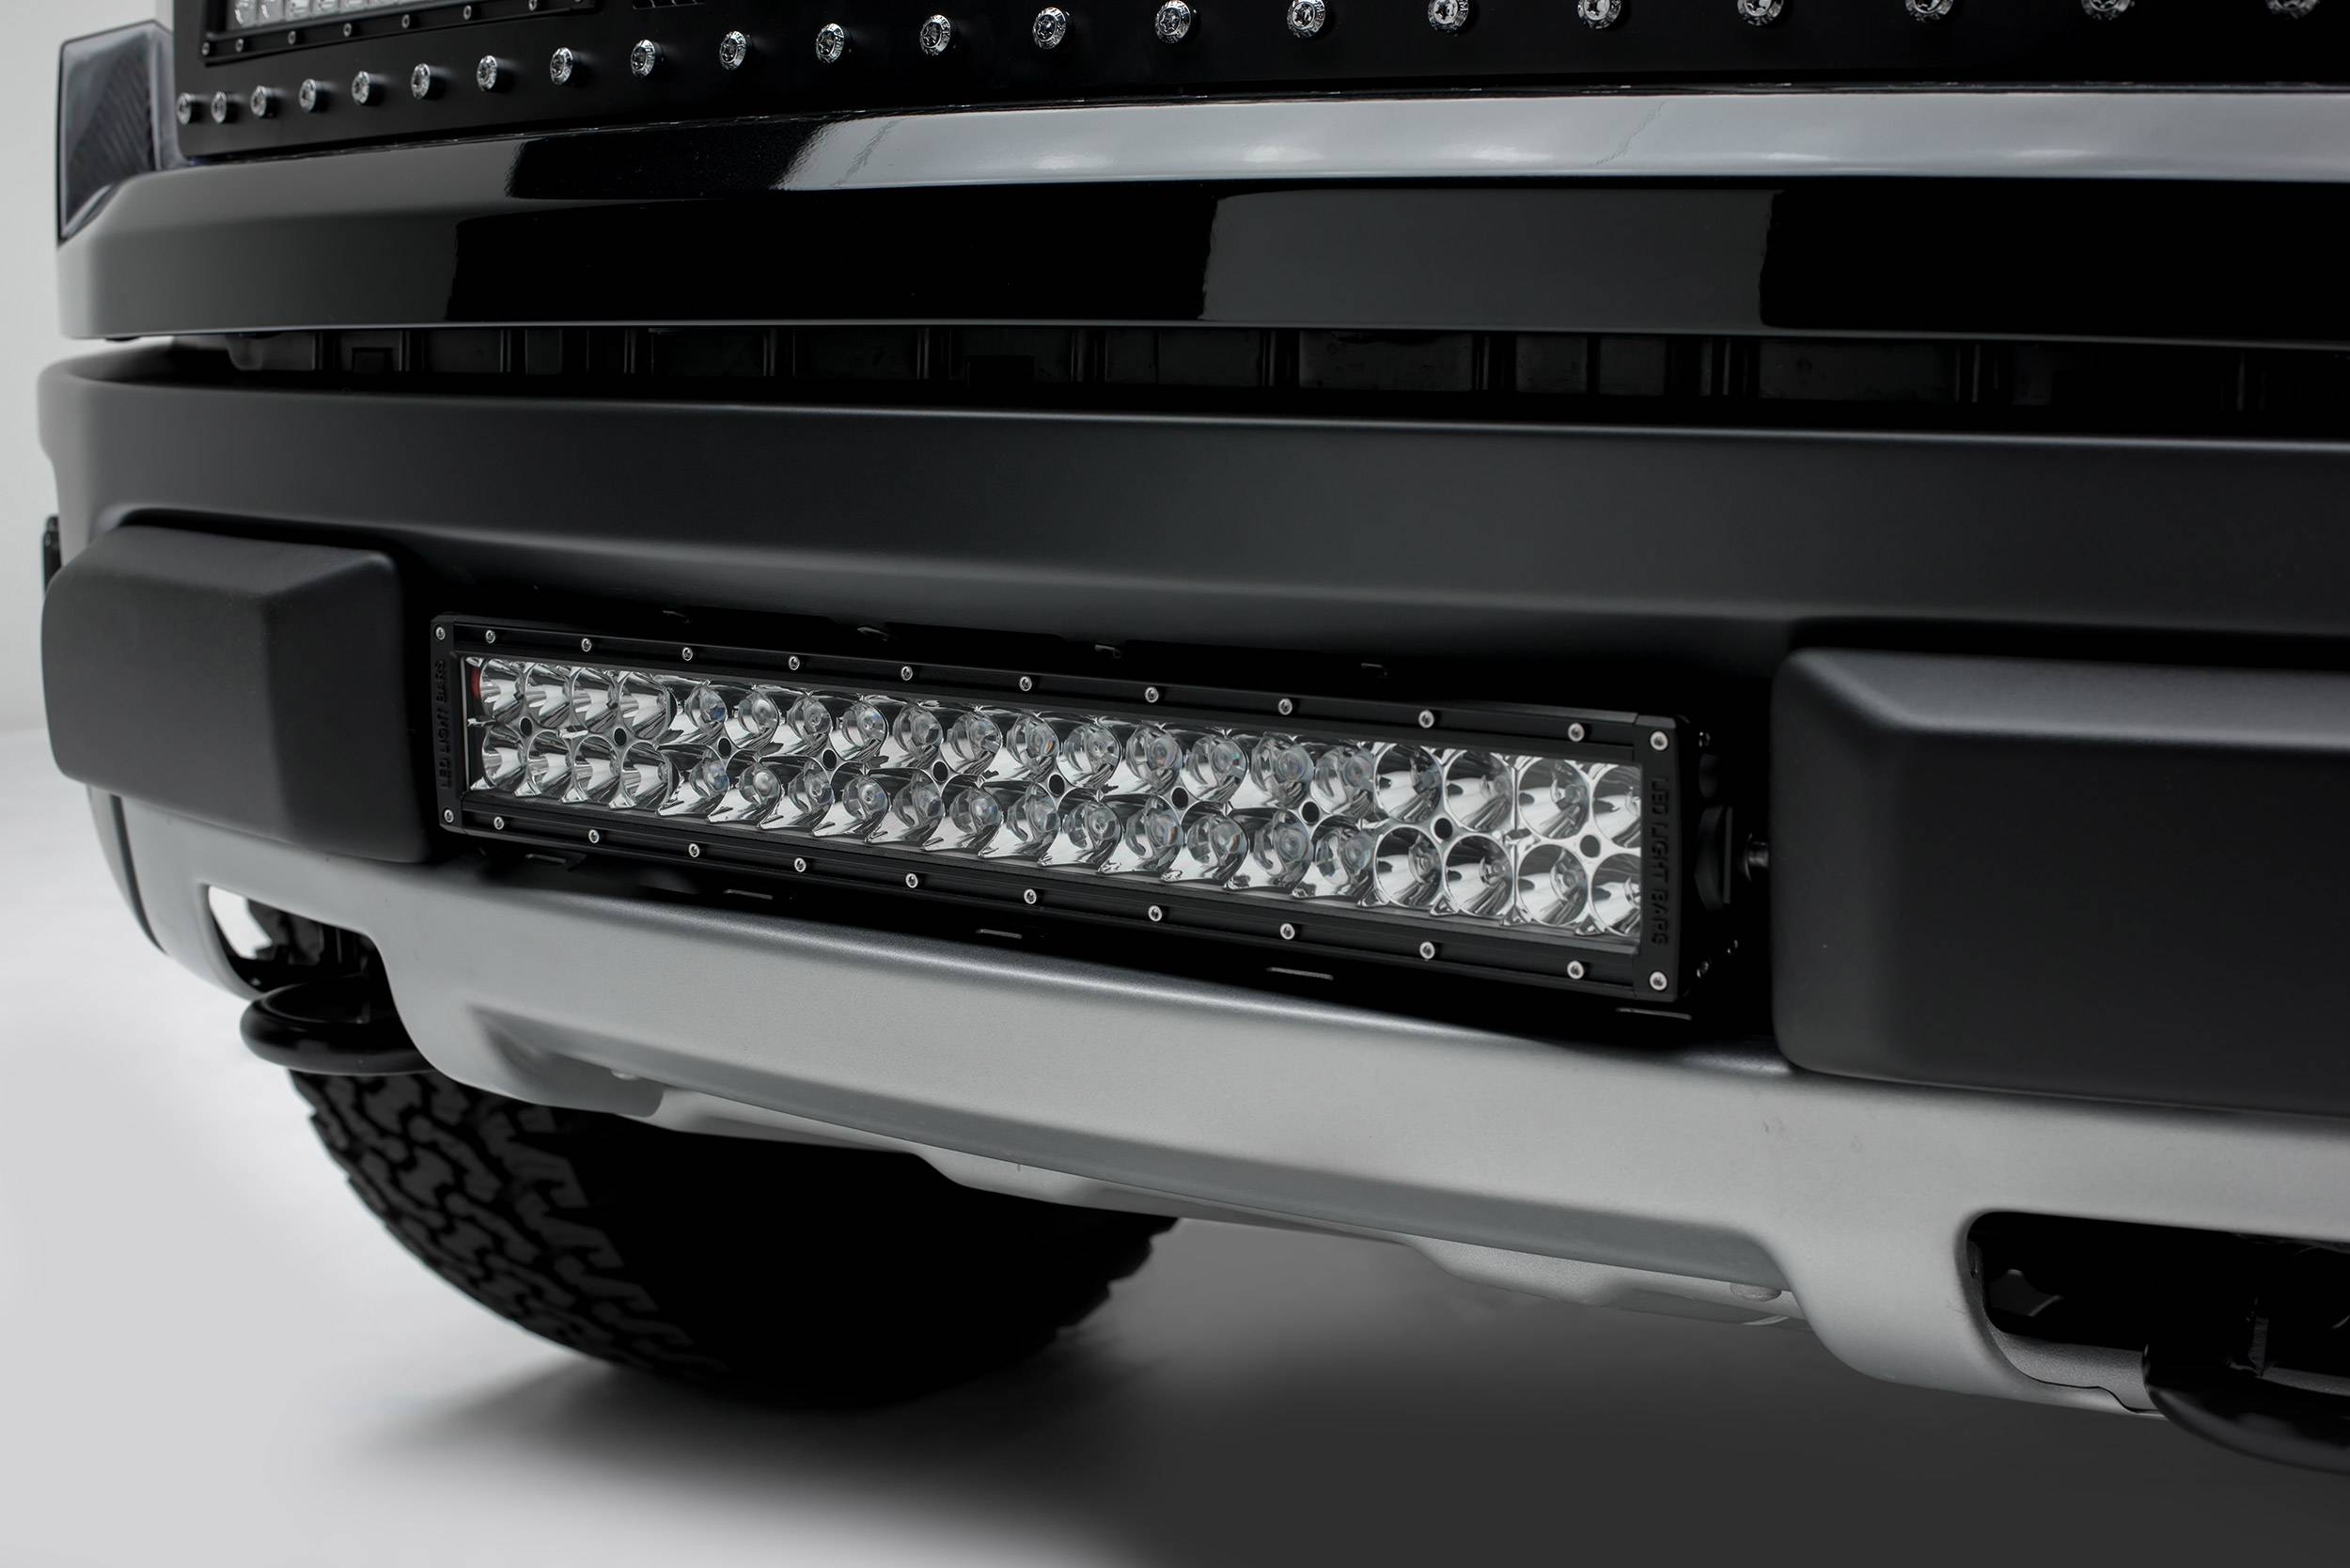 2010-2014 Ford F-150 Raptor Front Bumper Center LED Bracket to mount 20 Inch LED Light Bar - PN #Z325661